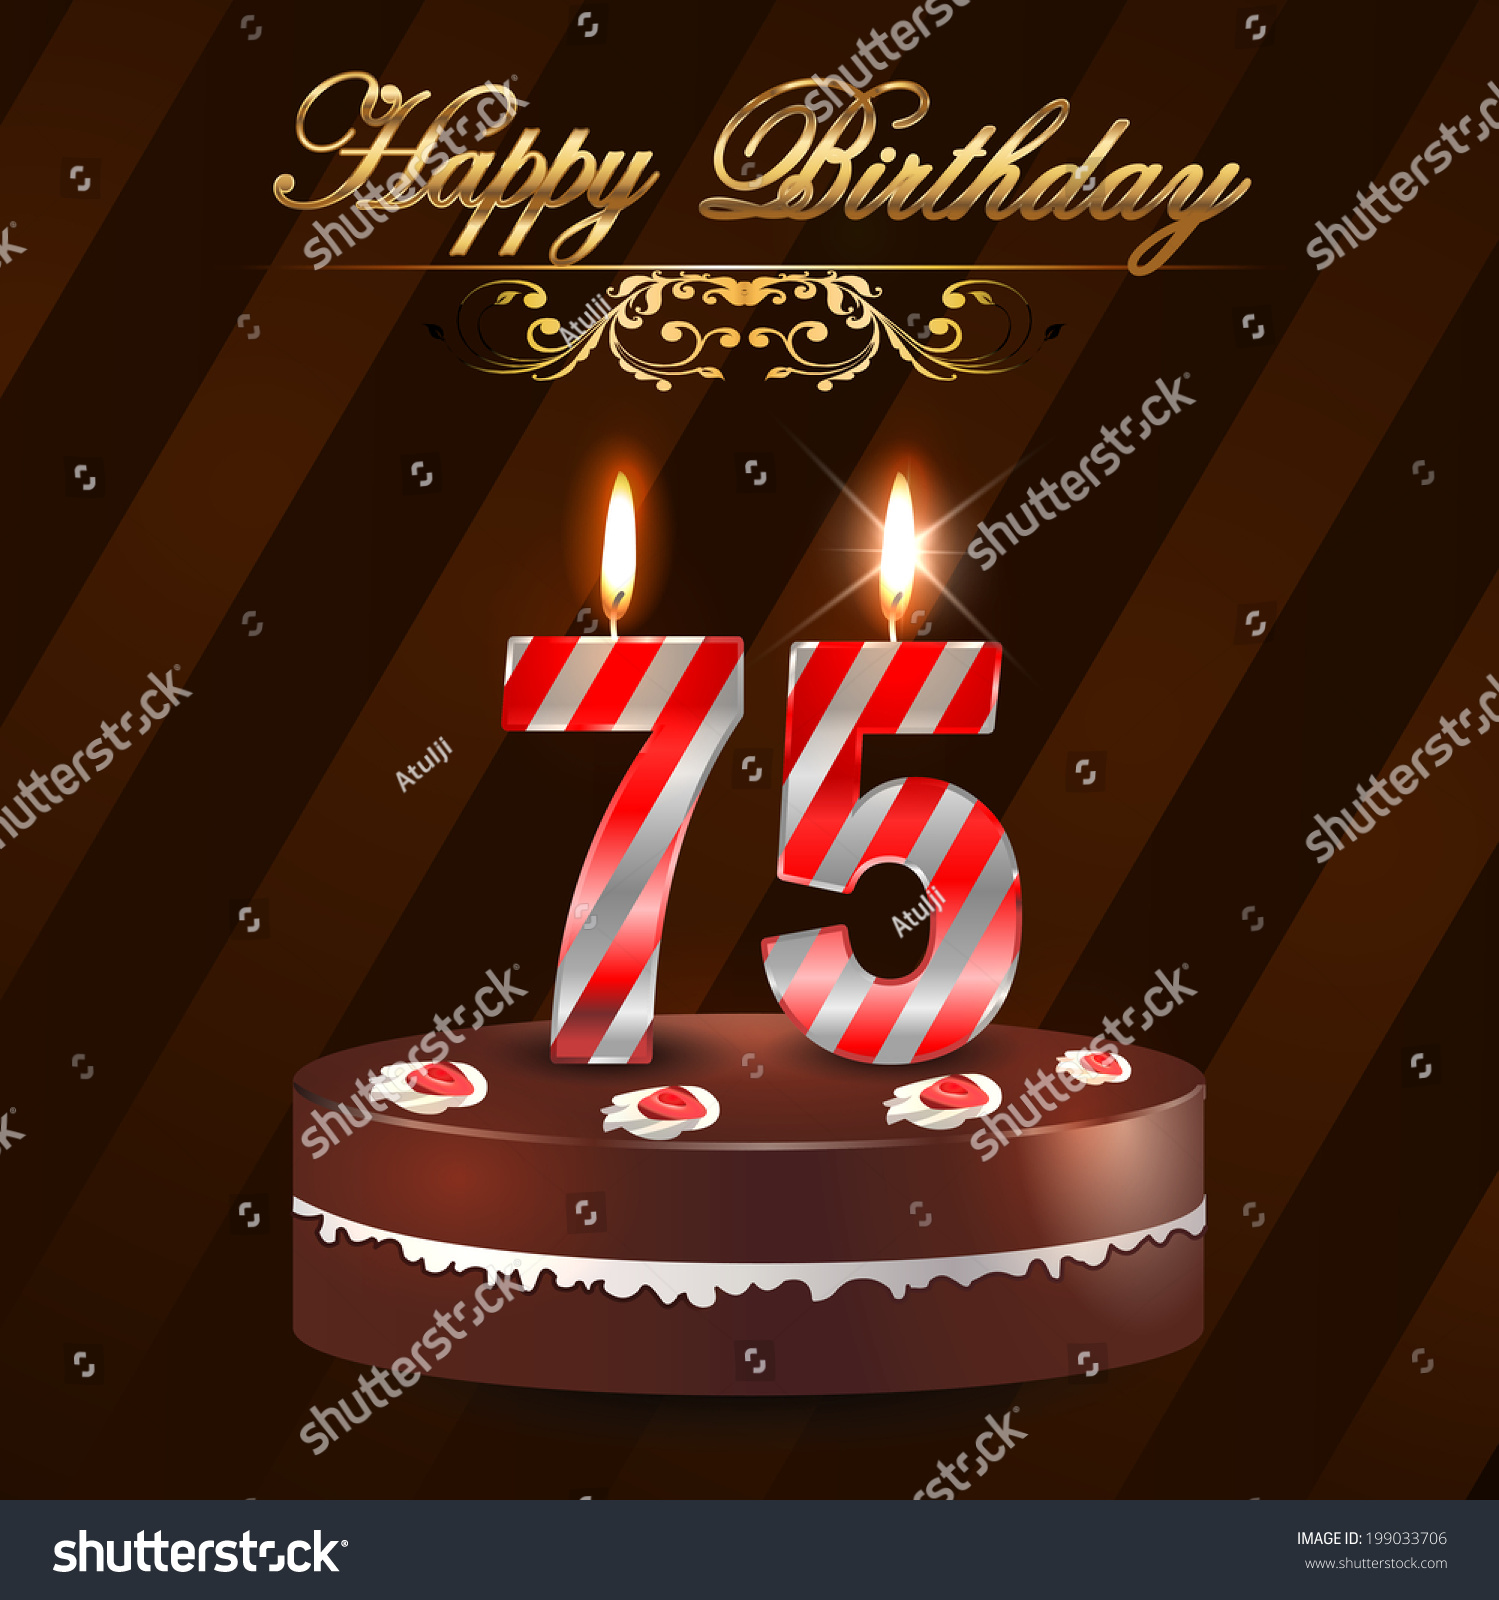 75 Year Happy Birthday Card With Cake And Candles 75th